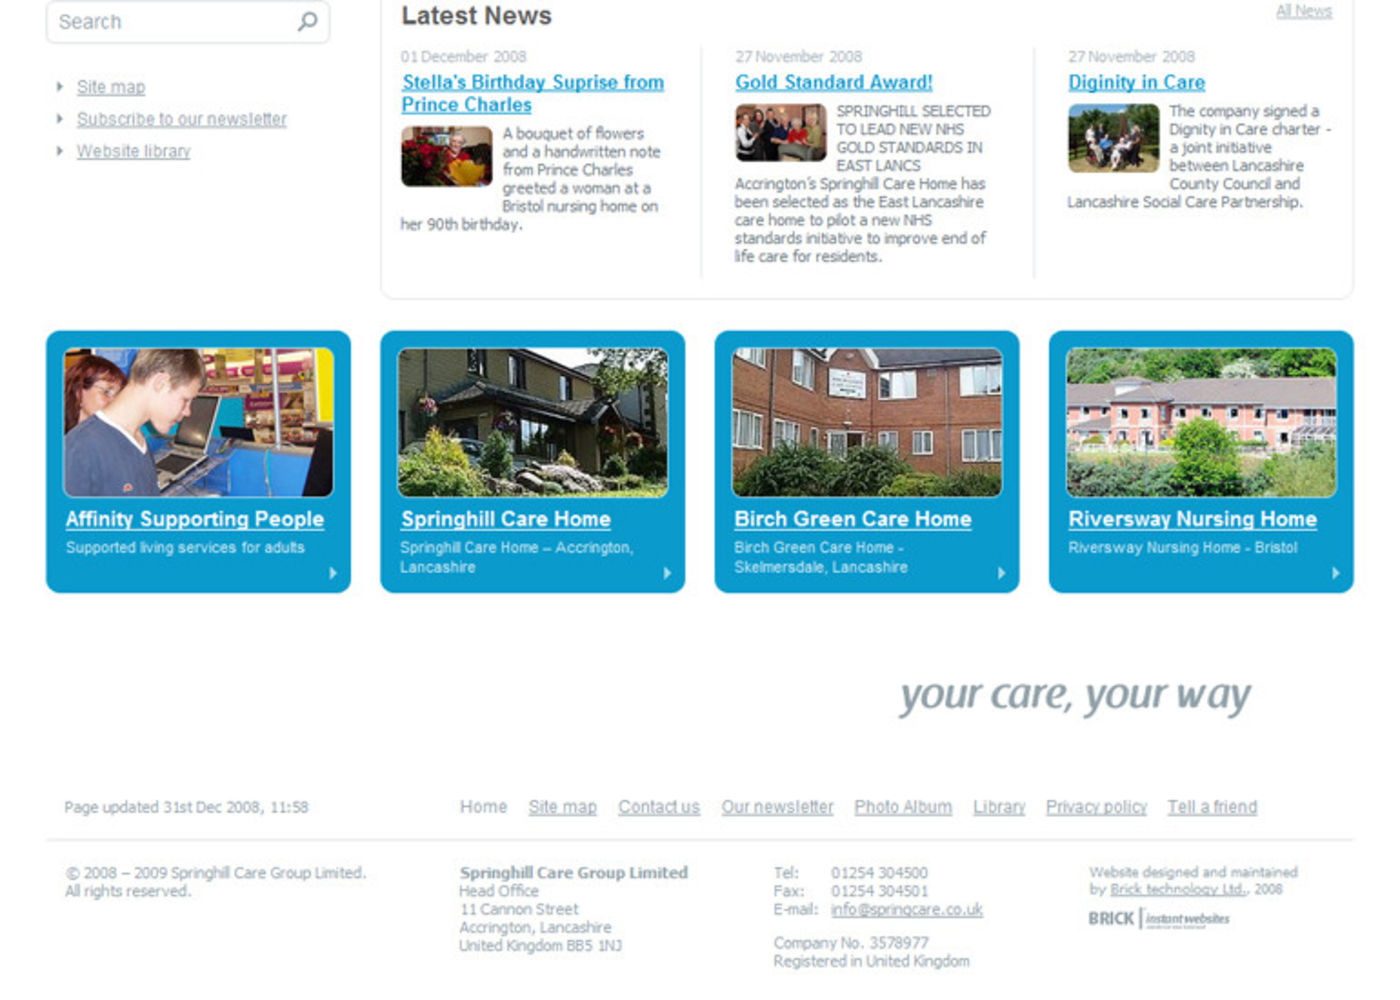 Springhill Care Group Limited Homepage footer